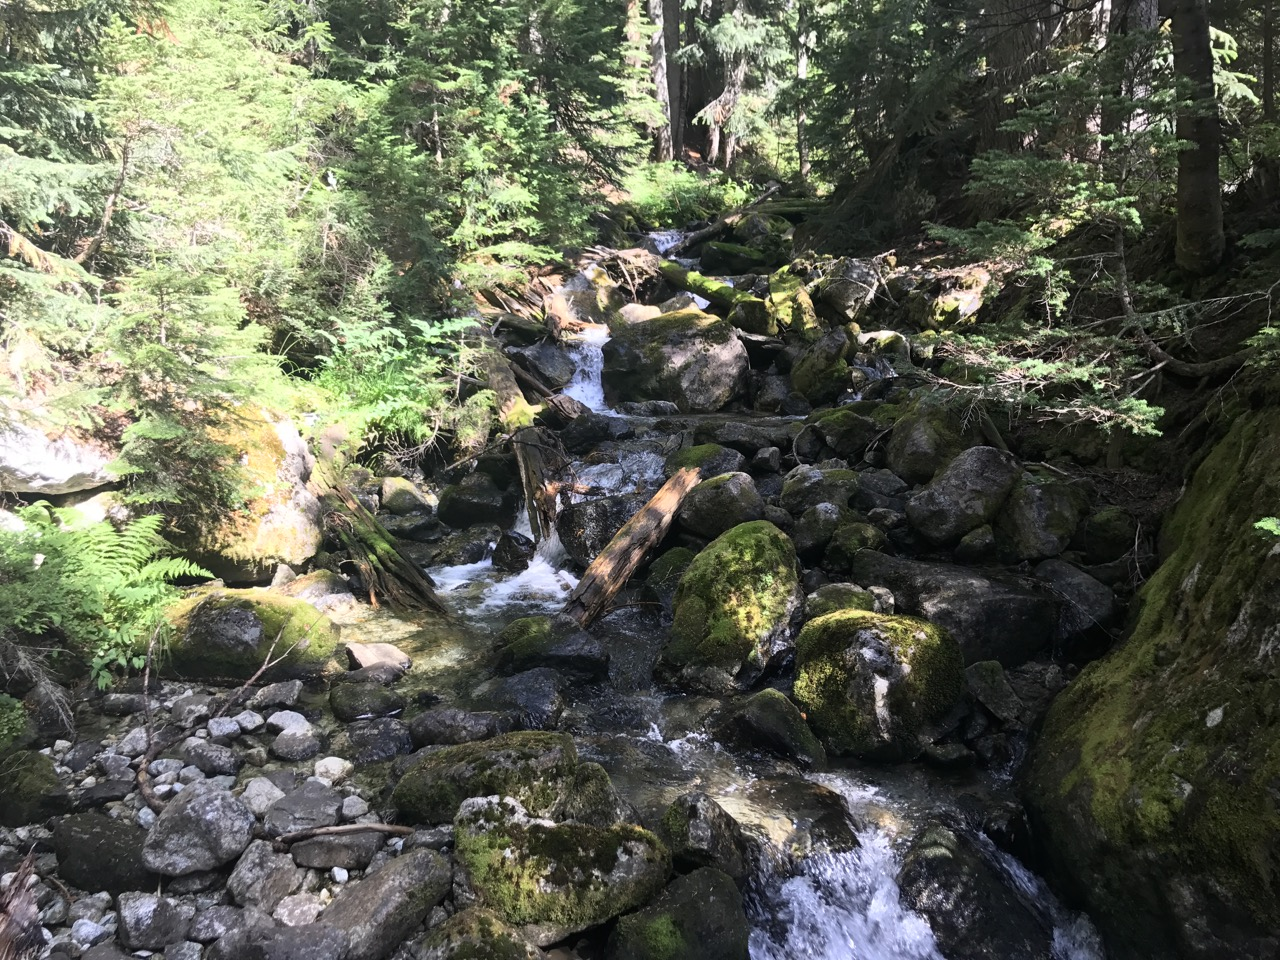 The first part of the hike is pretty standard BC trail, with a few interesting features like this mountain stream.